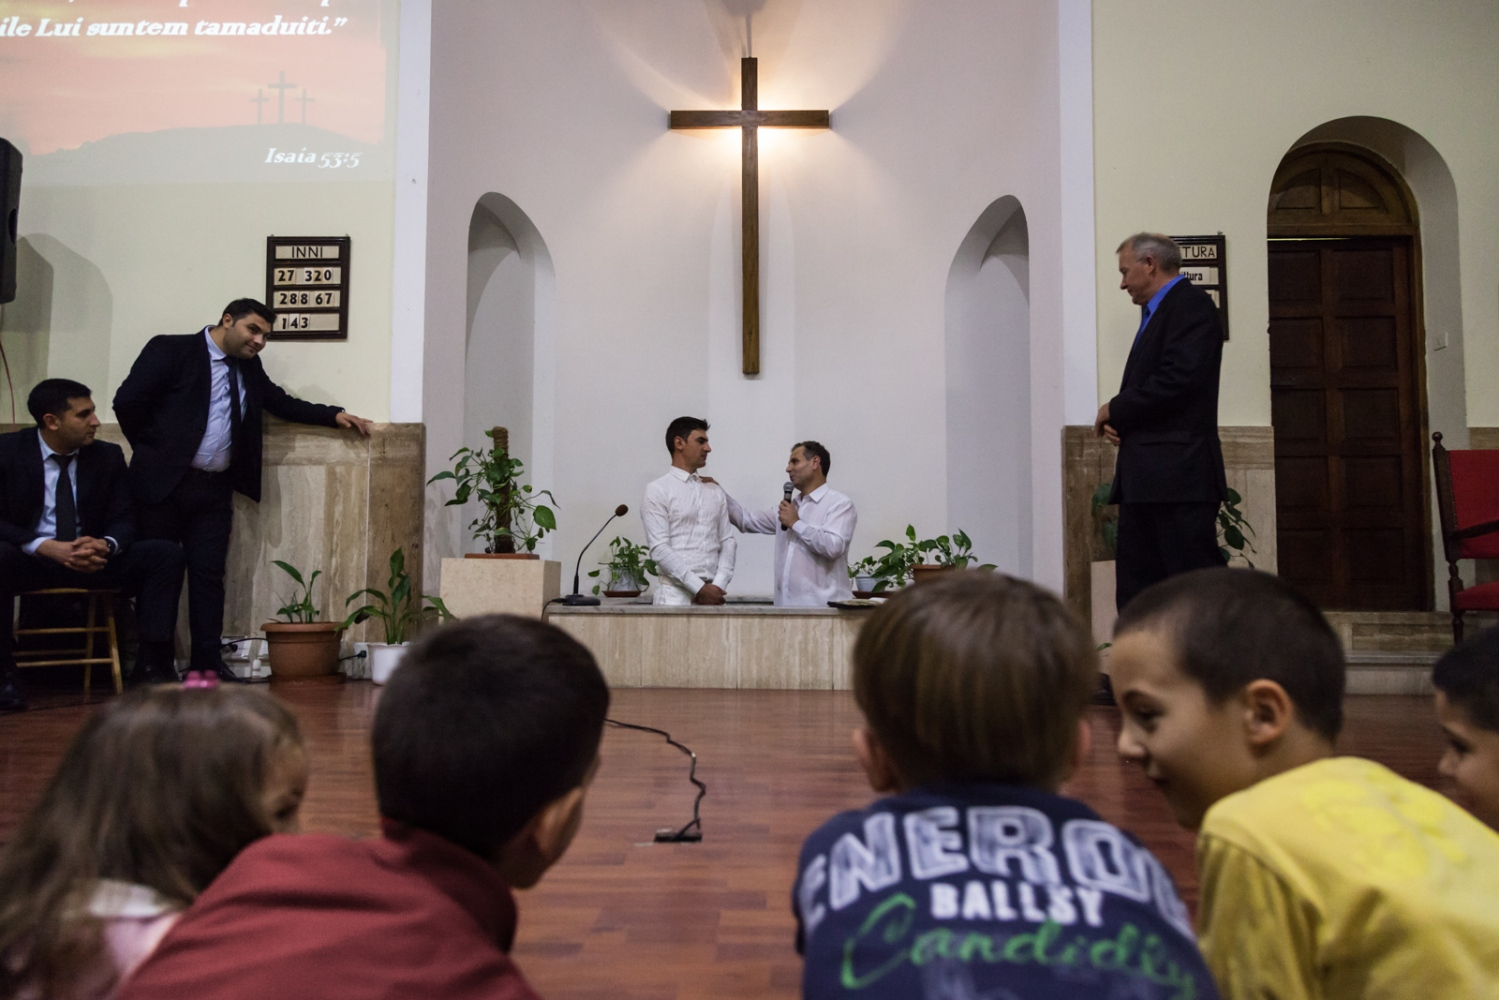 Nov. 6, 2014 - A young man from Romania, on the left, gets baptized. Before receiving the baptism the man shared his story with the other members of the Romanian Baptist Church of Centocelle, a working class neighborhood in southeast Rome. He said that he found God while he was spending five years in jail for some serious crime he committed when he was younger, not long after he had moved to Rome.